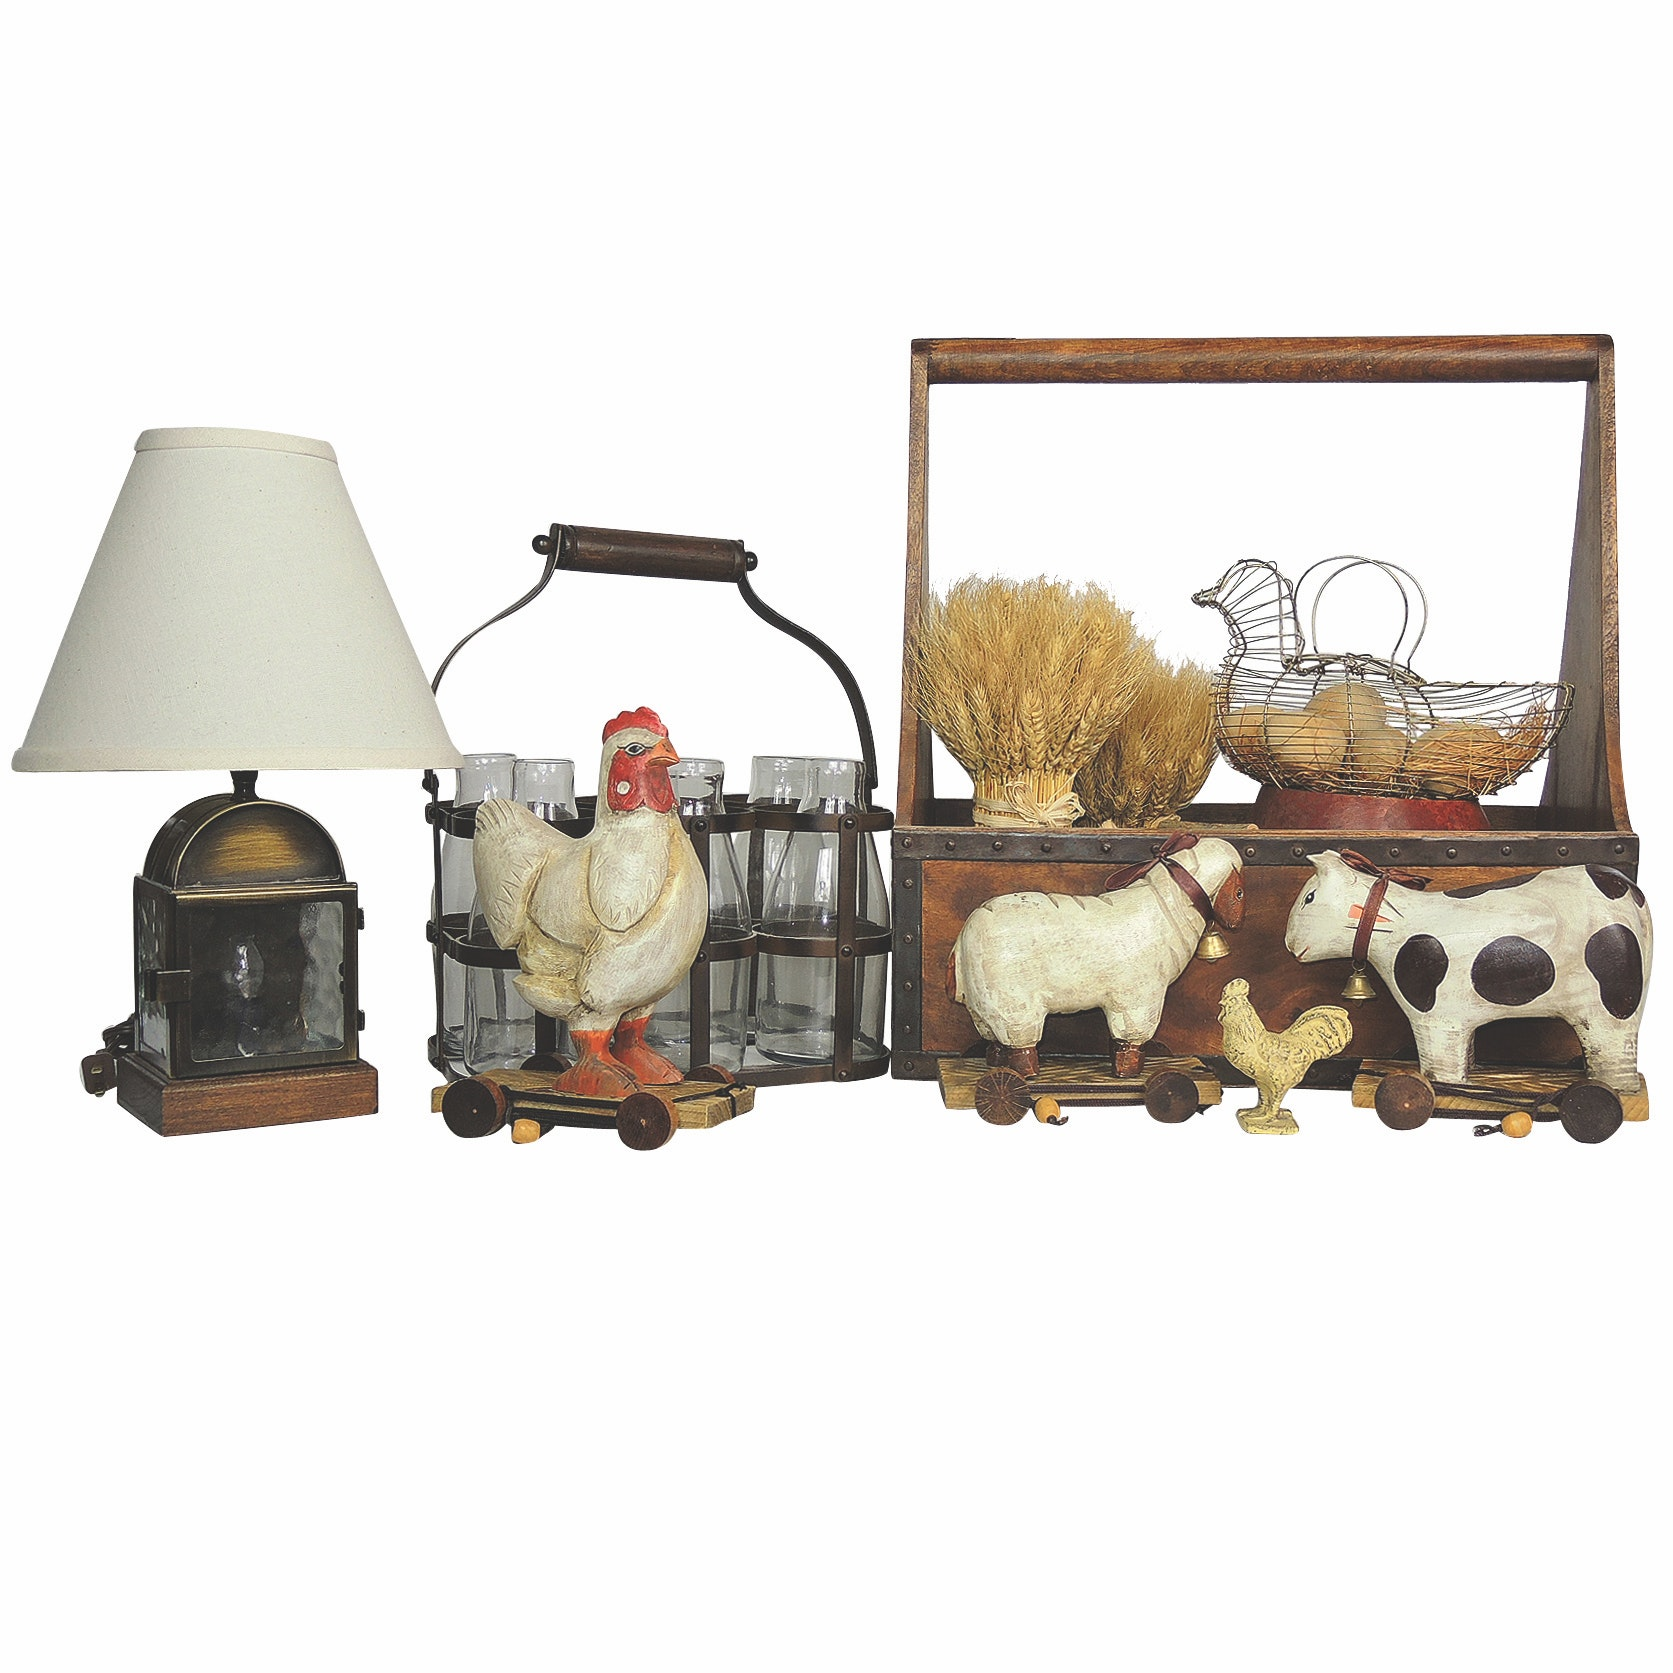 Country Home Farm Style Decor Including Glass Bottles with Metal Handled Carrier